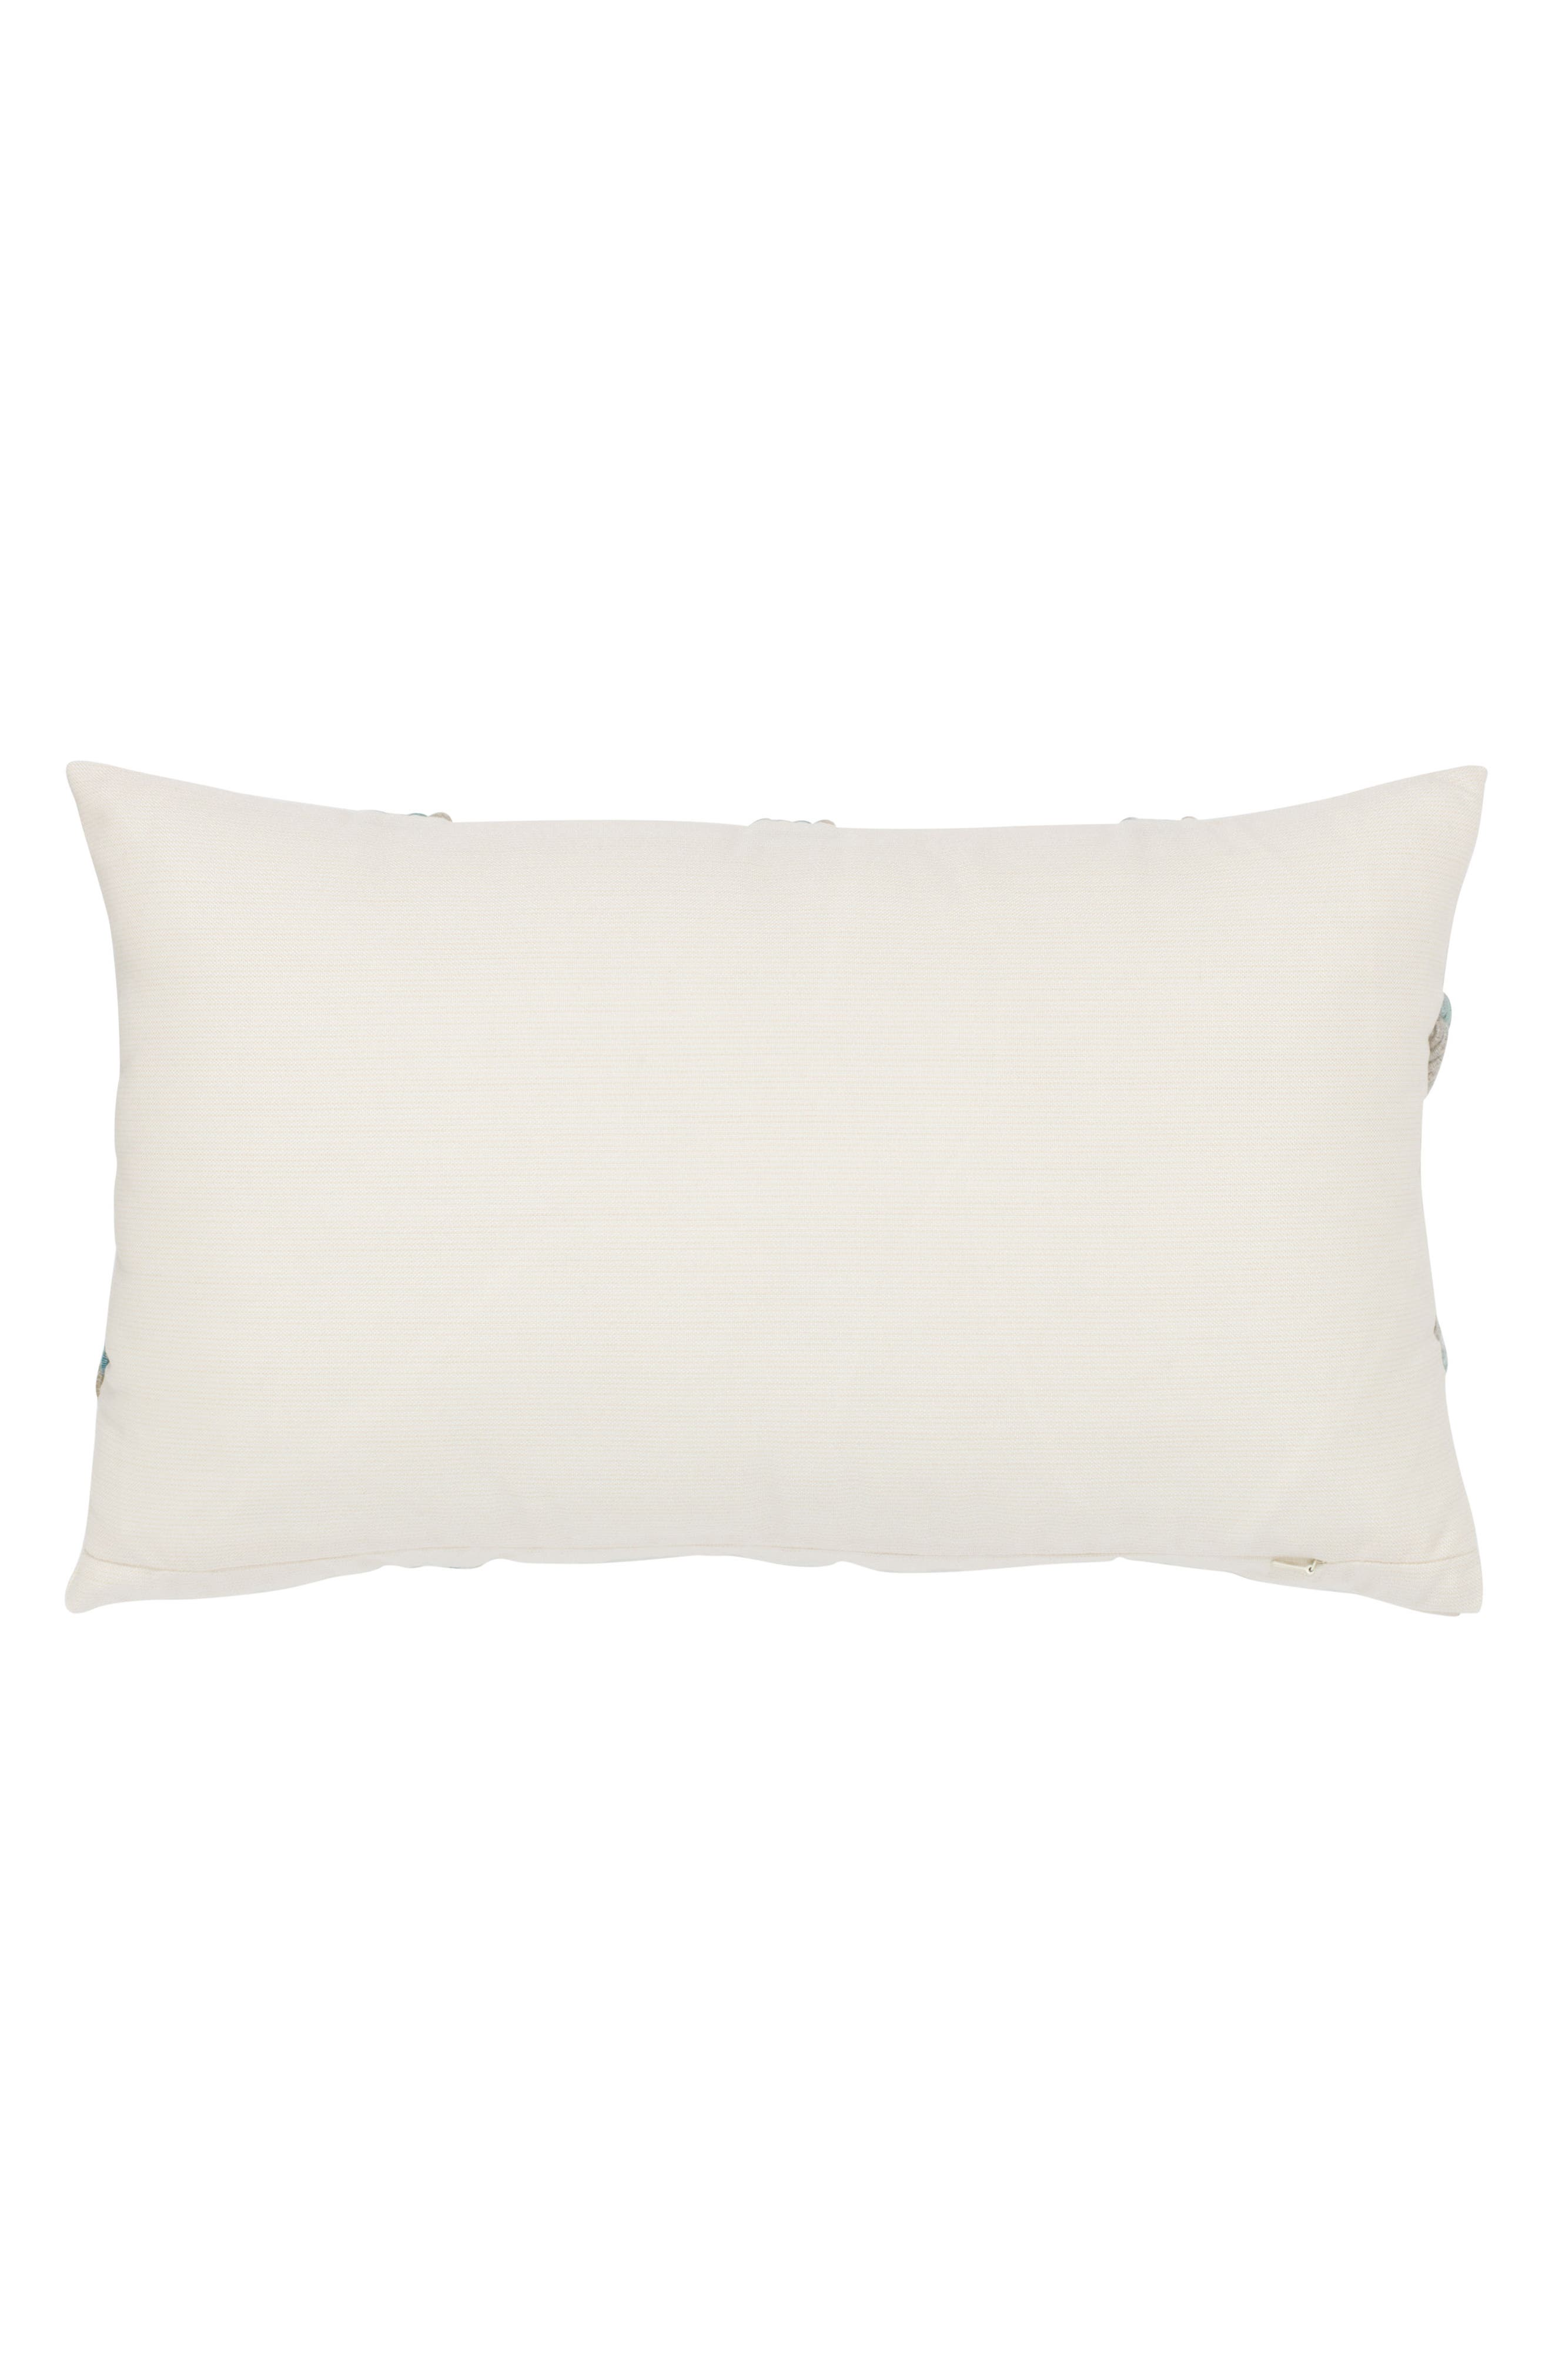 Aqua Rope Indoor/Outdoor Accent Pillow,                             Alternate thumbnail 2, color,                             Off White Blue